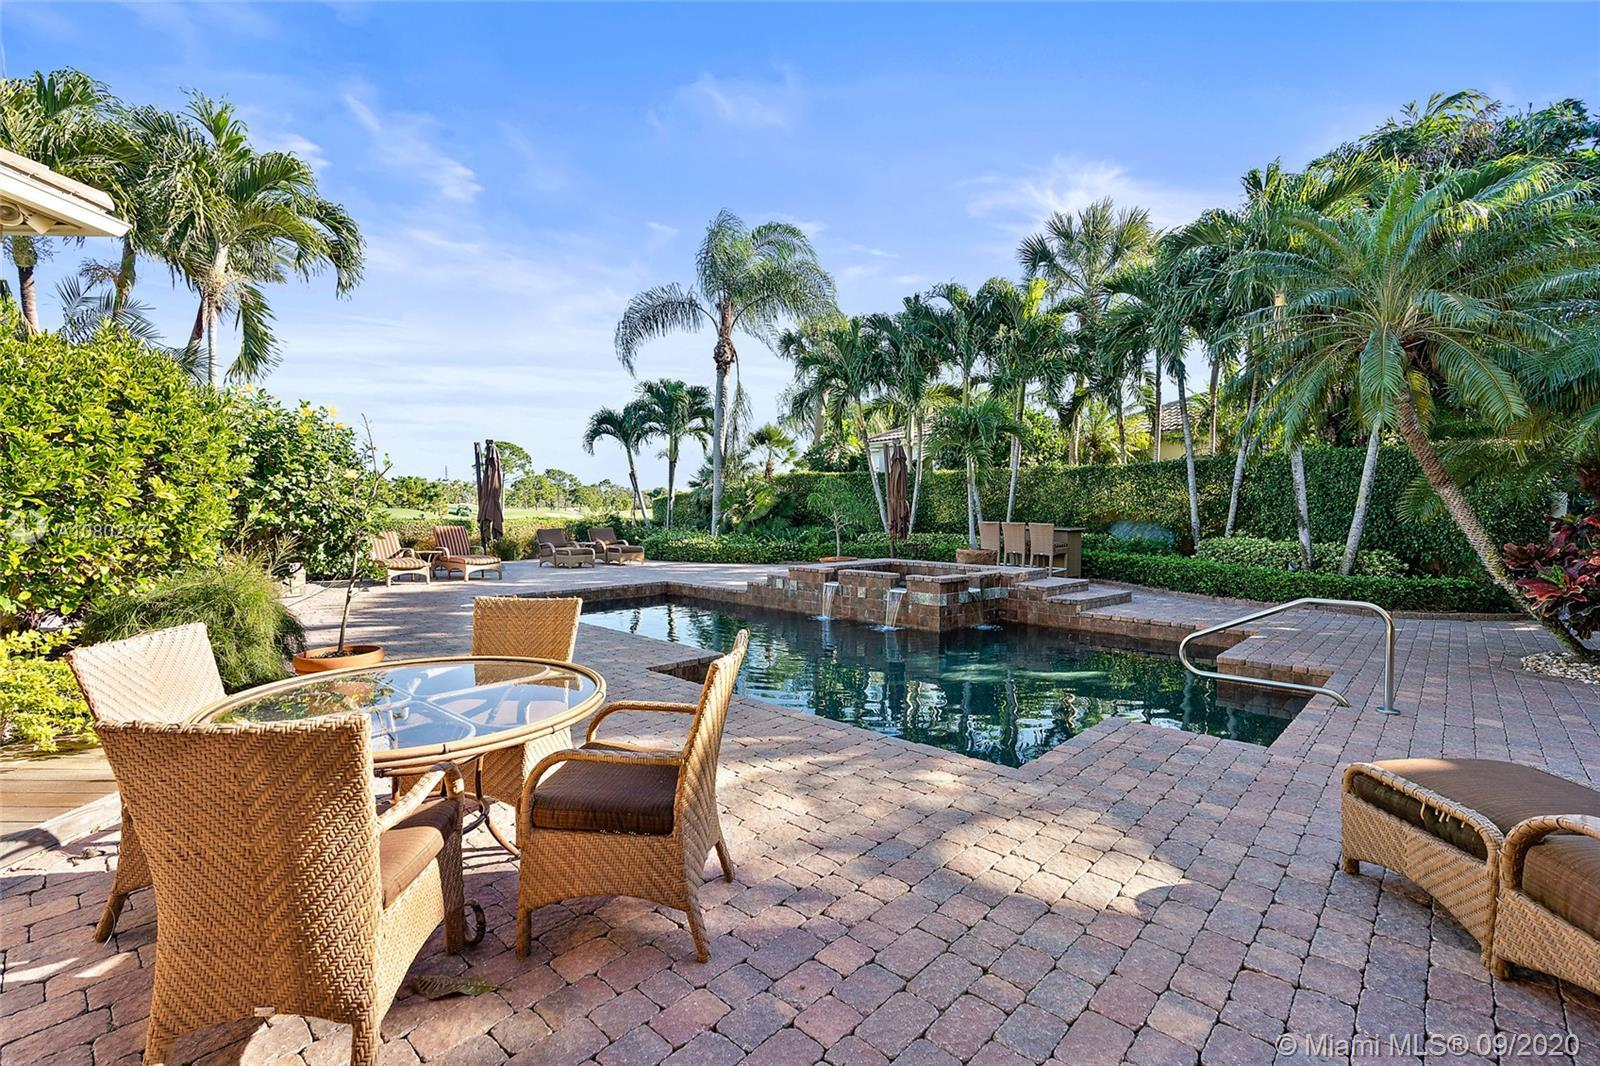 Enjoy countless hours enjoying the endless golf course view of this spectacular courtyard home. mome